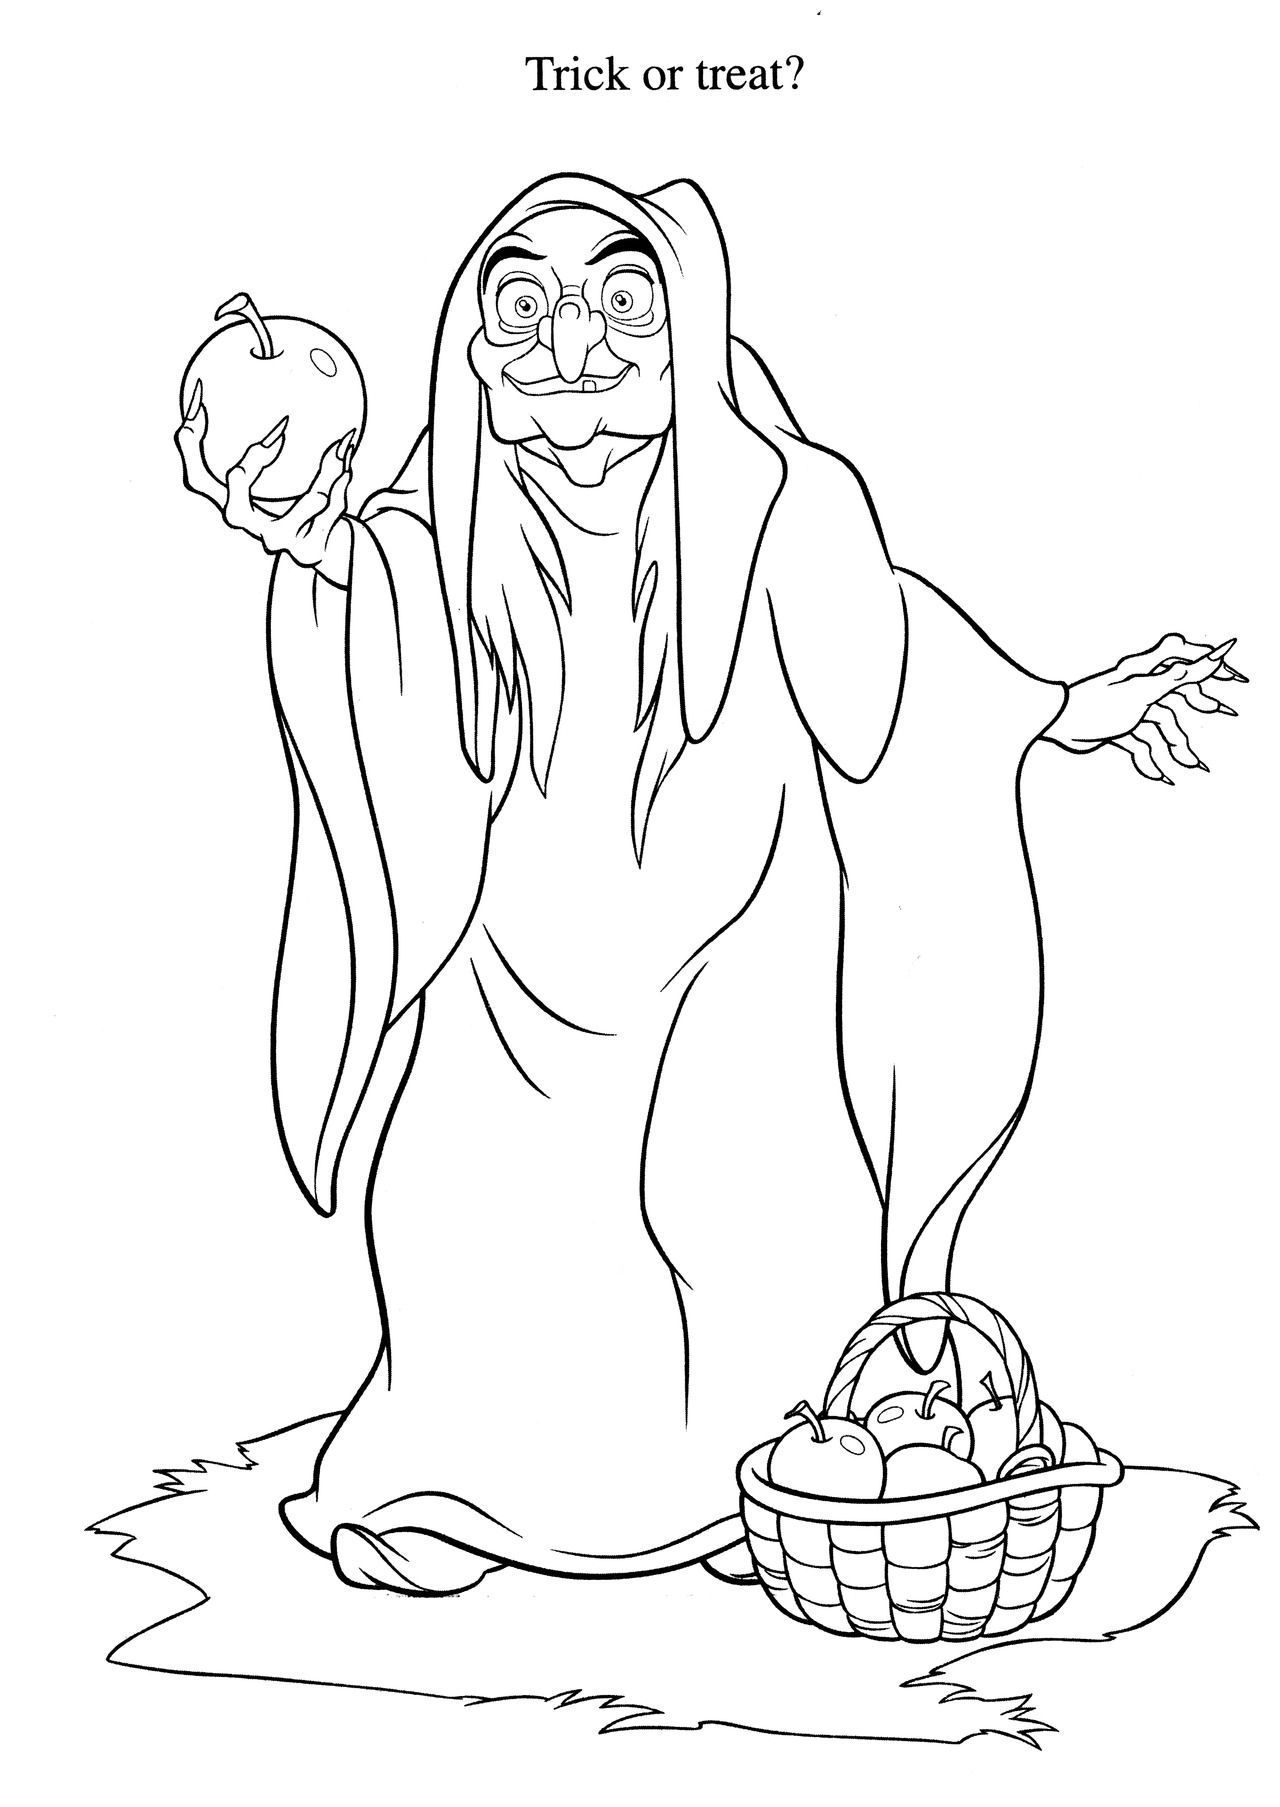 Evil Witch Silhouette Snowwhite Evil Witch Silhouette Witch Coloring Pages Disney Coloring Pages Snow White Coloring Pages